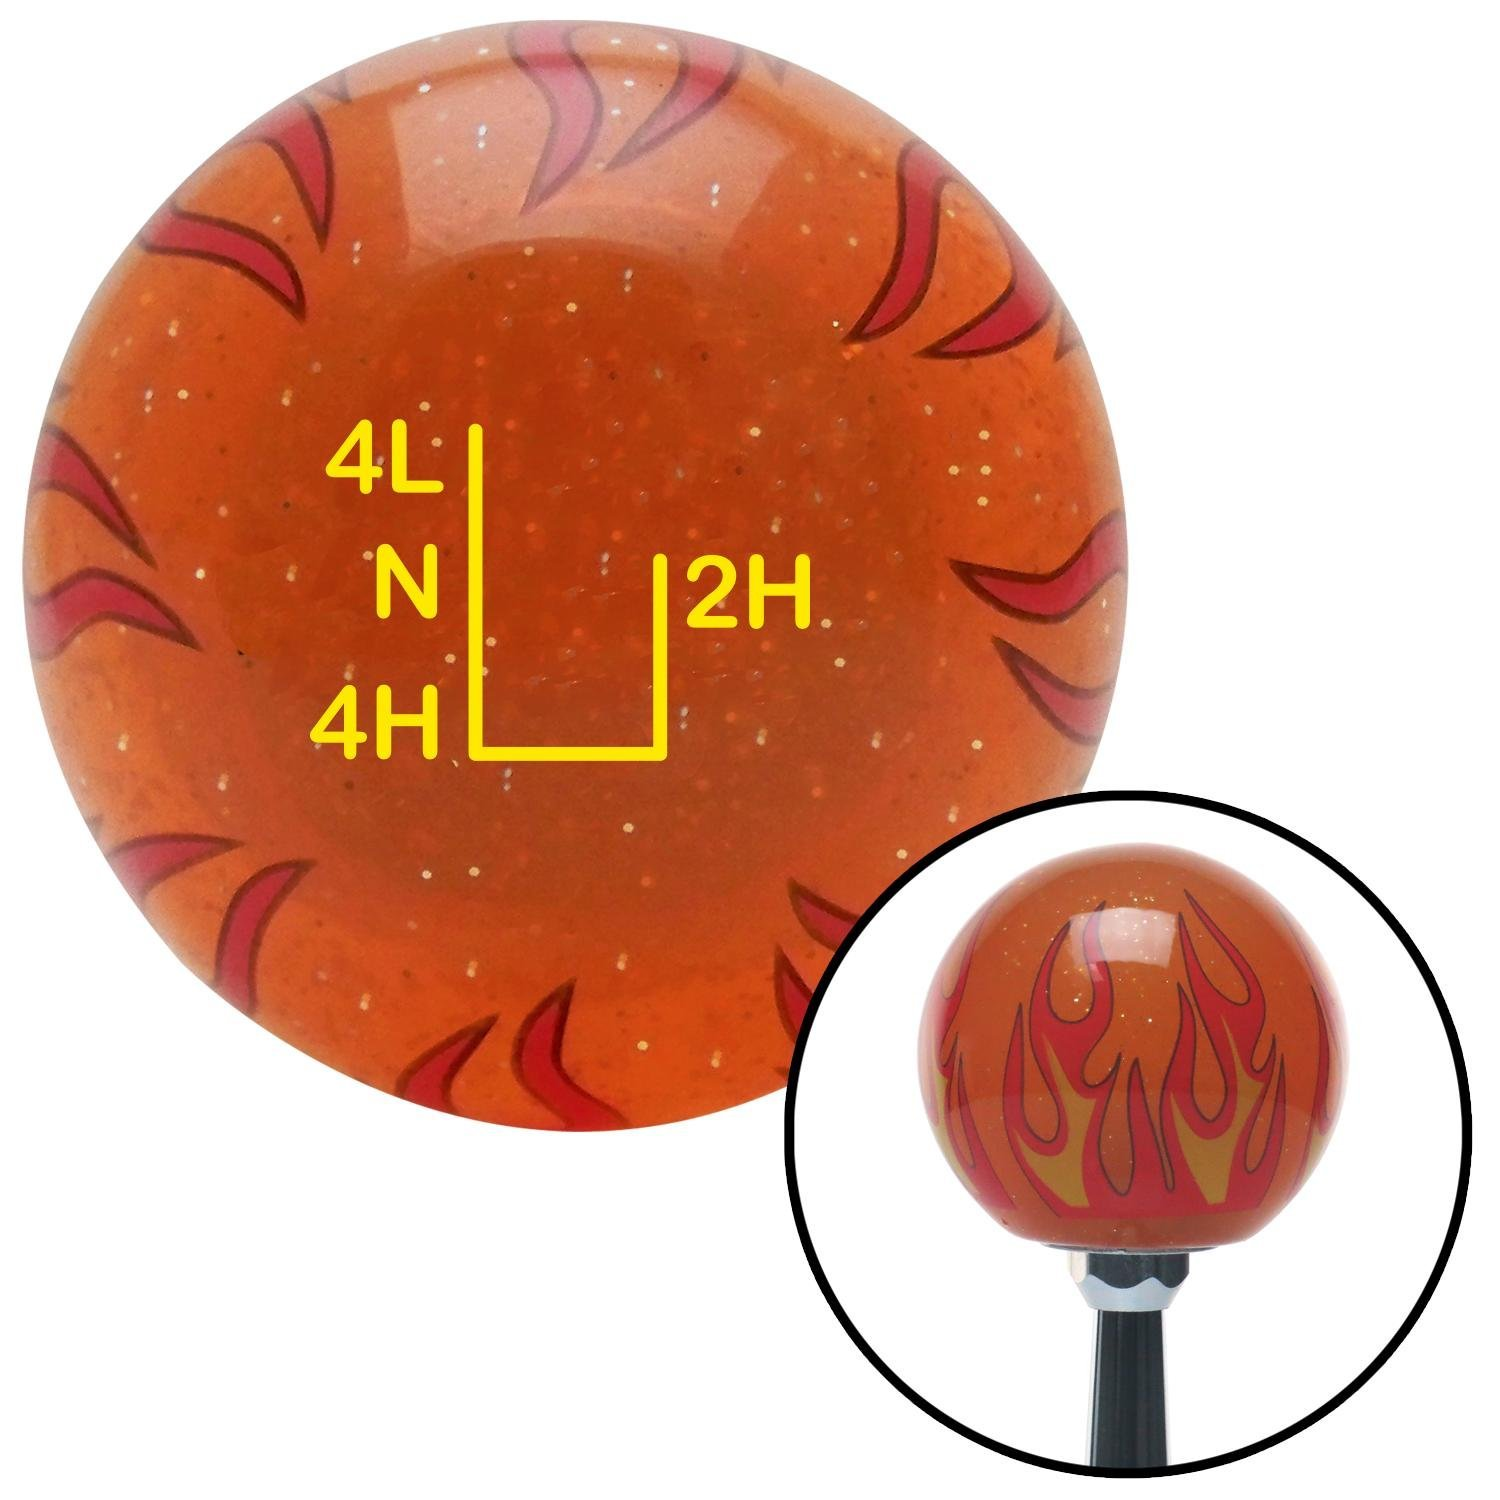 American Shifter 259610 Orange Flame Metal Flake Shift Knob with M16 x 1.5 Insert Yellow Shift Pattern 54n